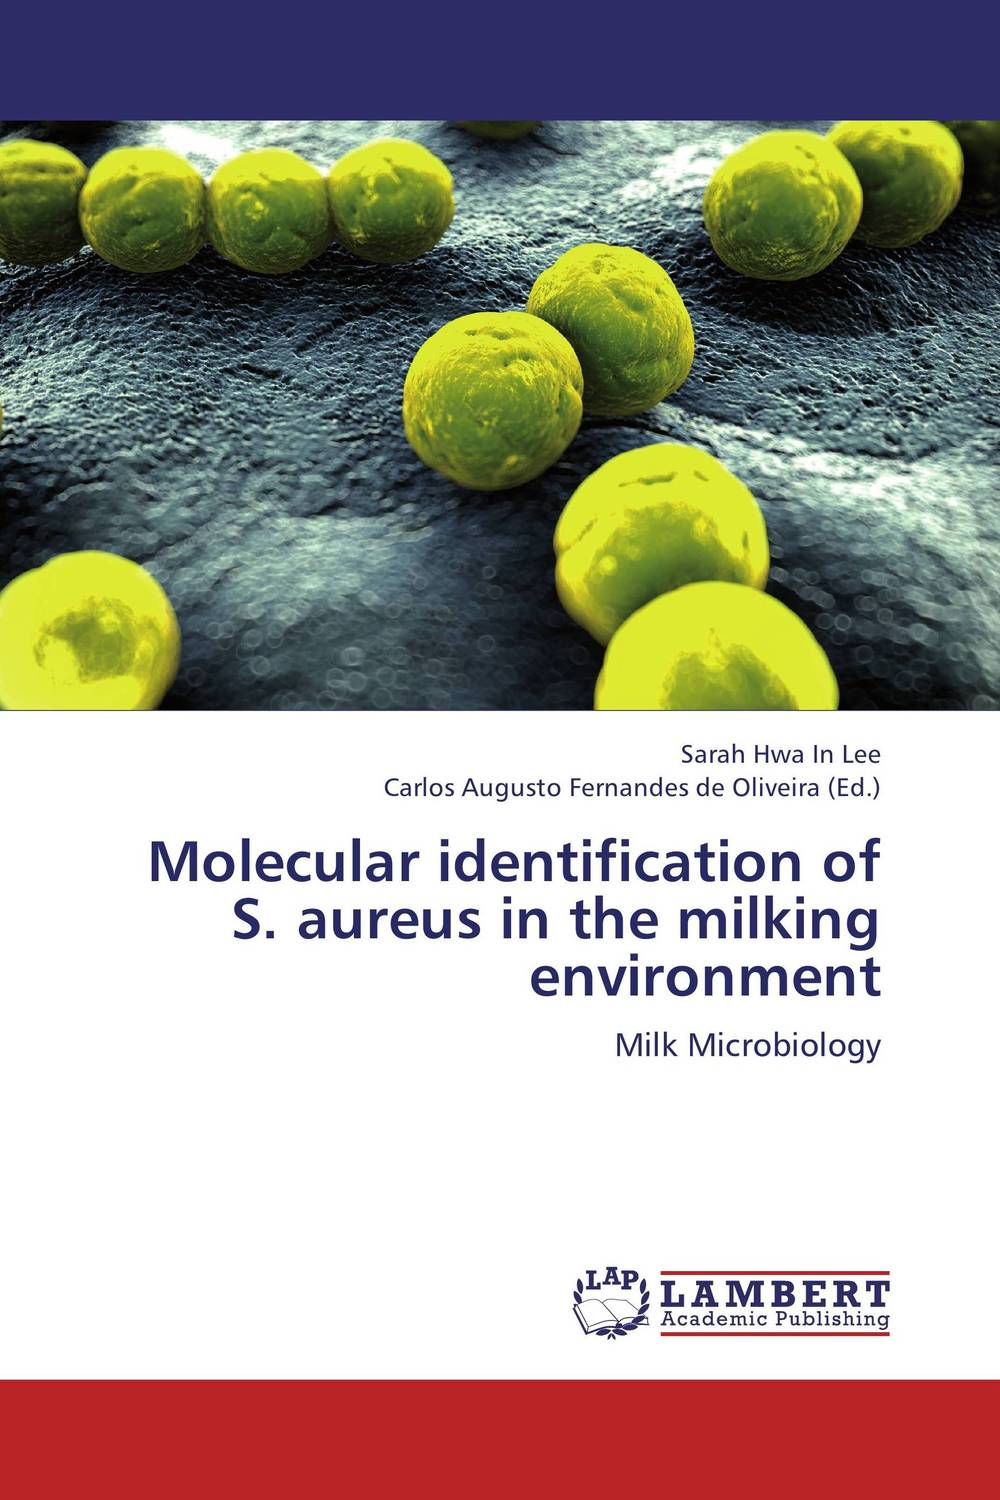 Molecular identification of S. aureus in the milking environment evaluation of aqueous solubility of hydroxamic acids by pls modelling